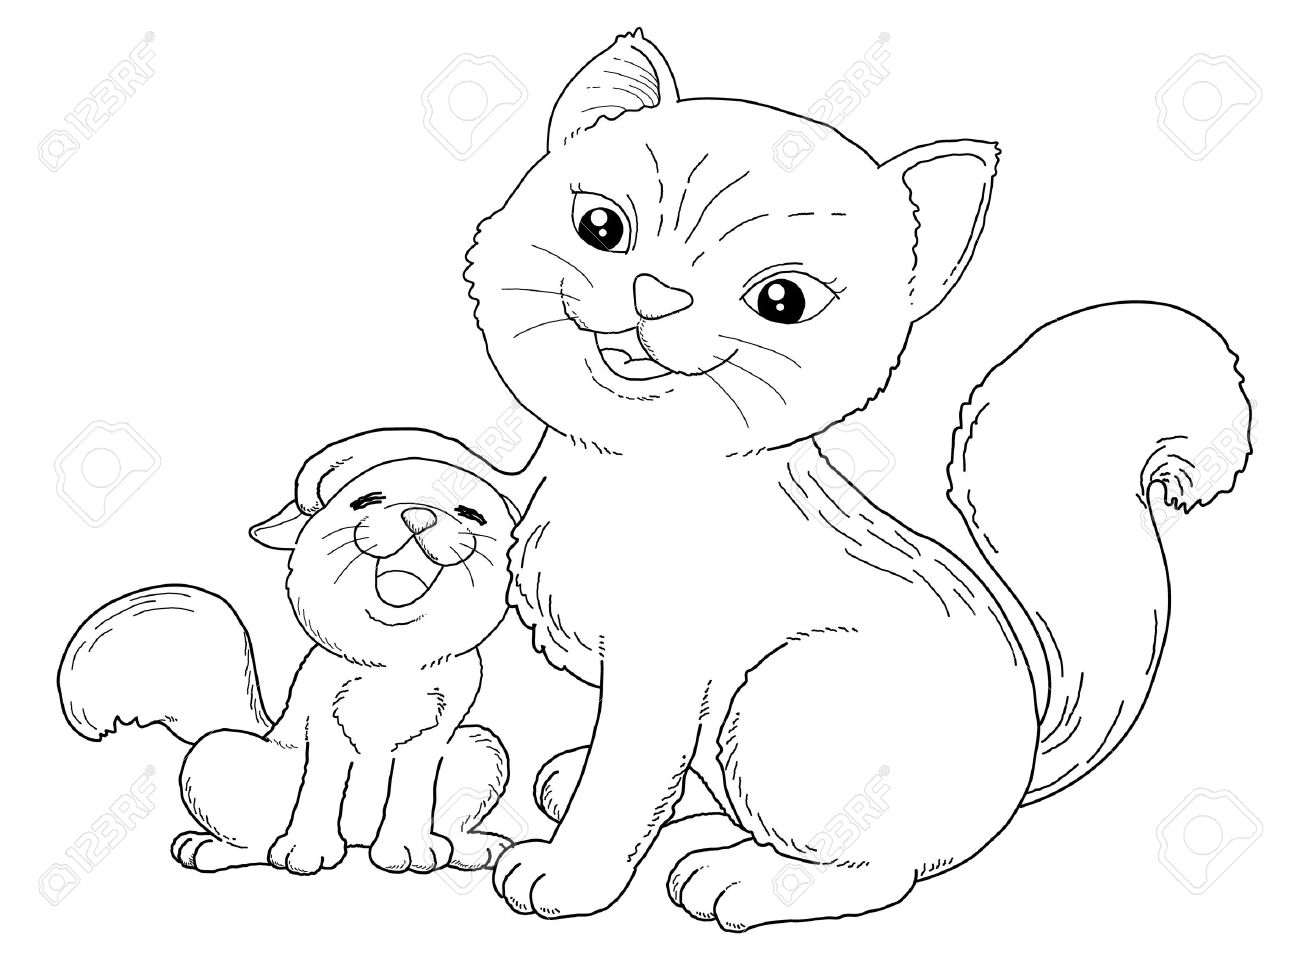 Coloring Book Illustration Of Cat And Little Cat Royalty Free